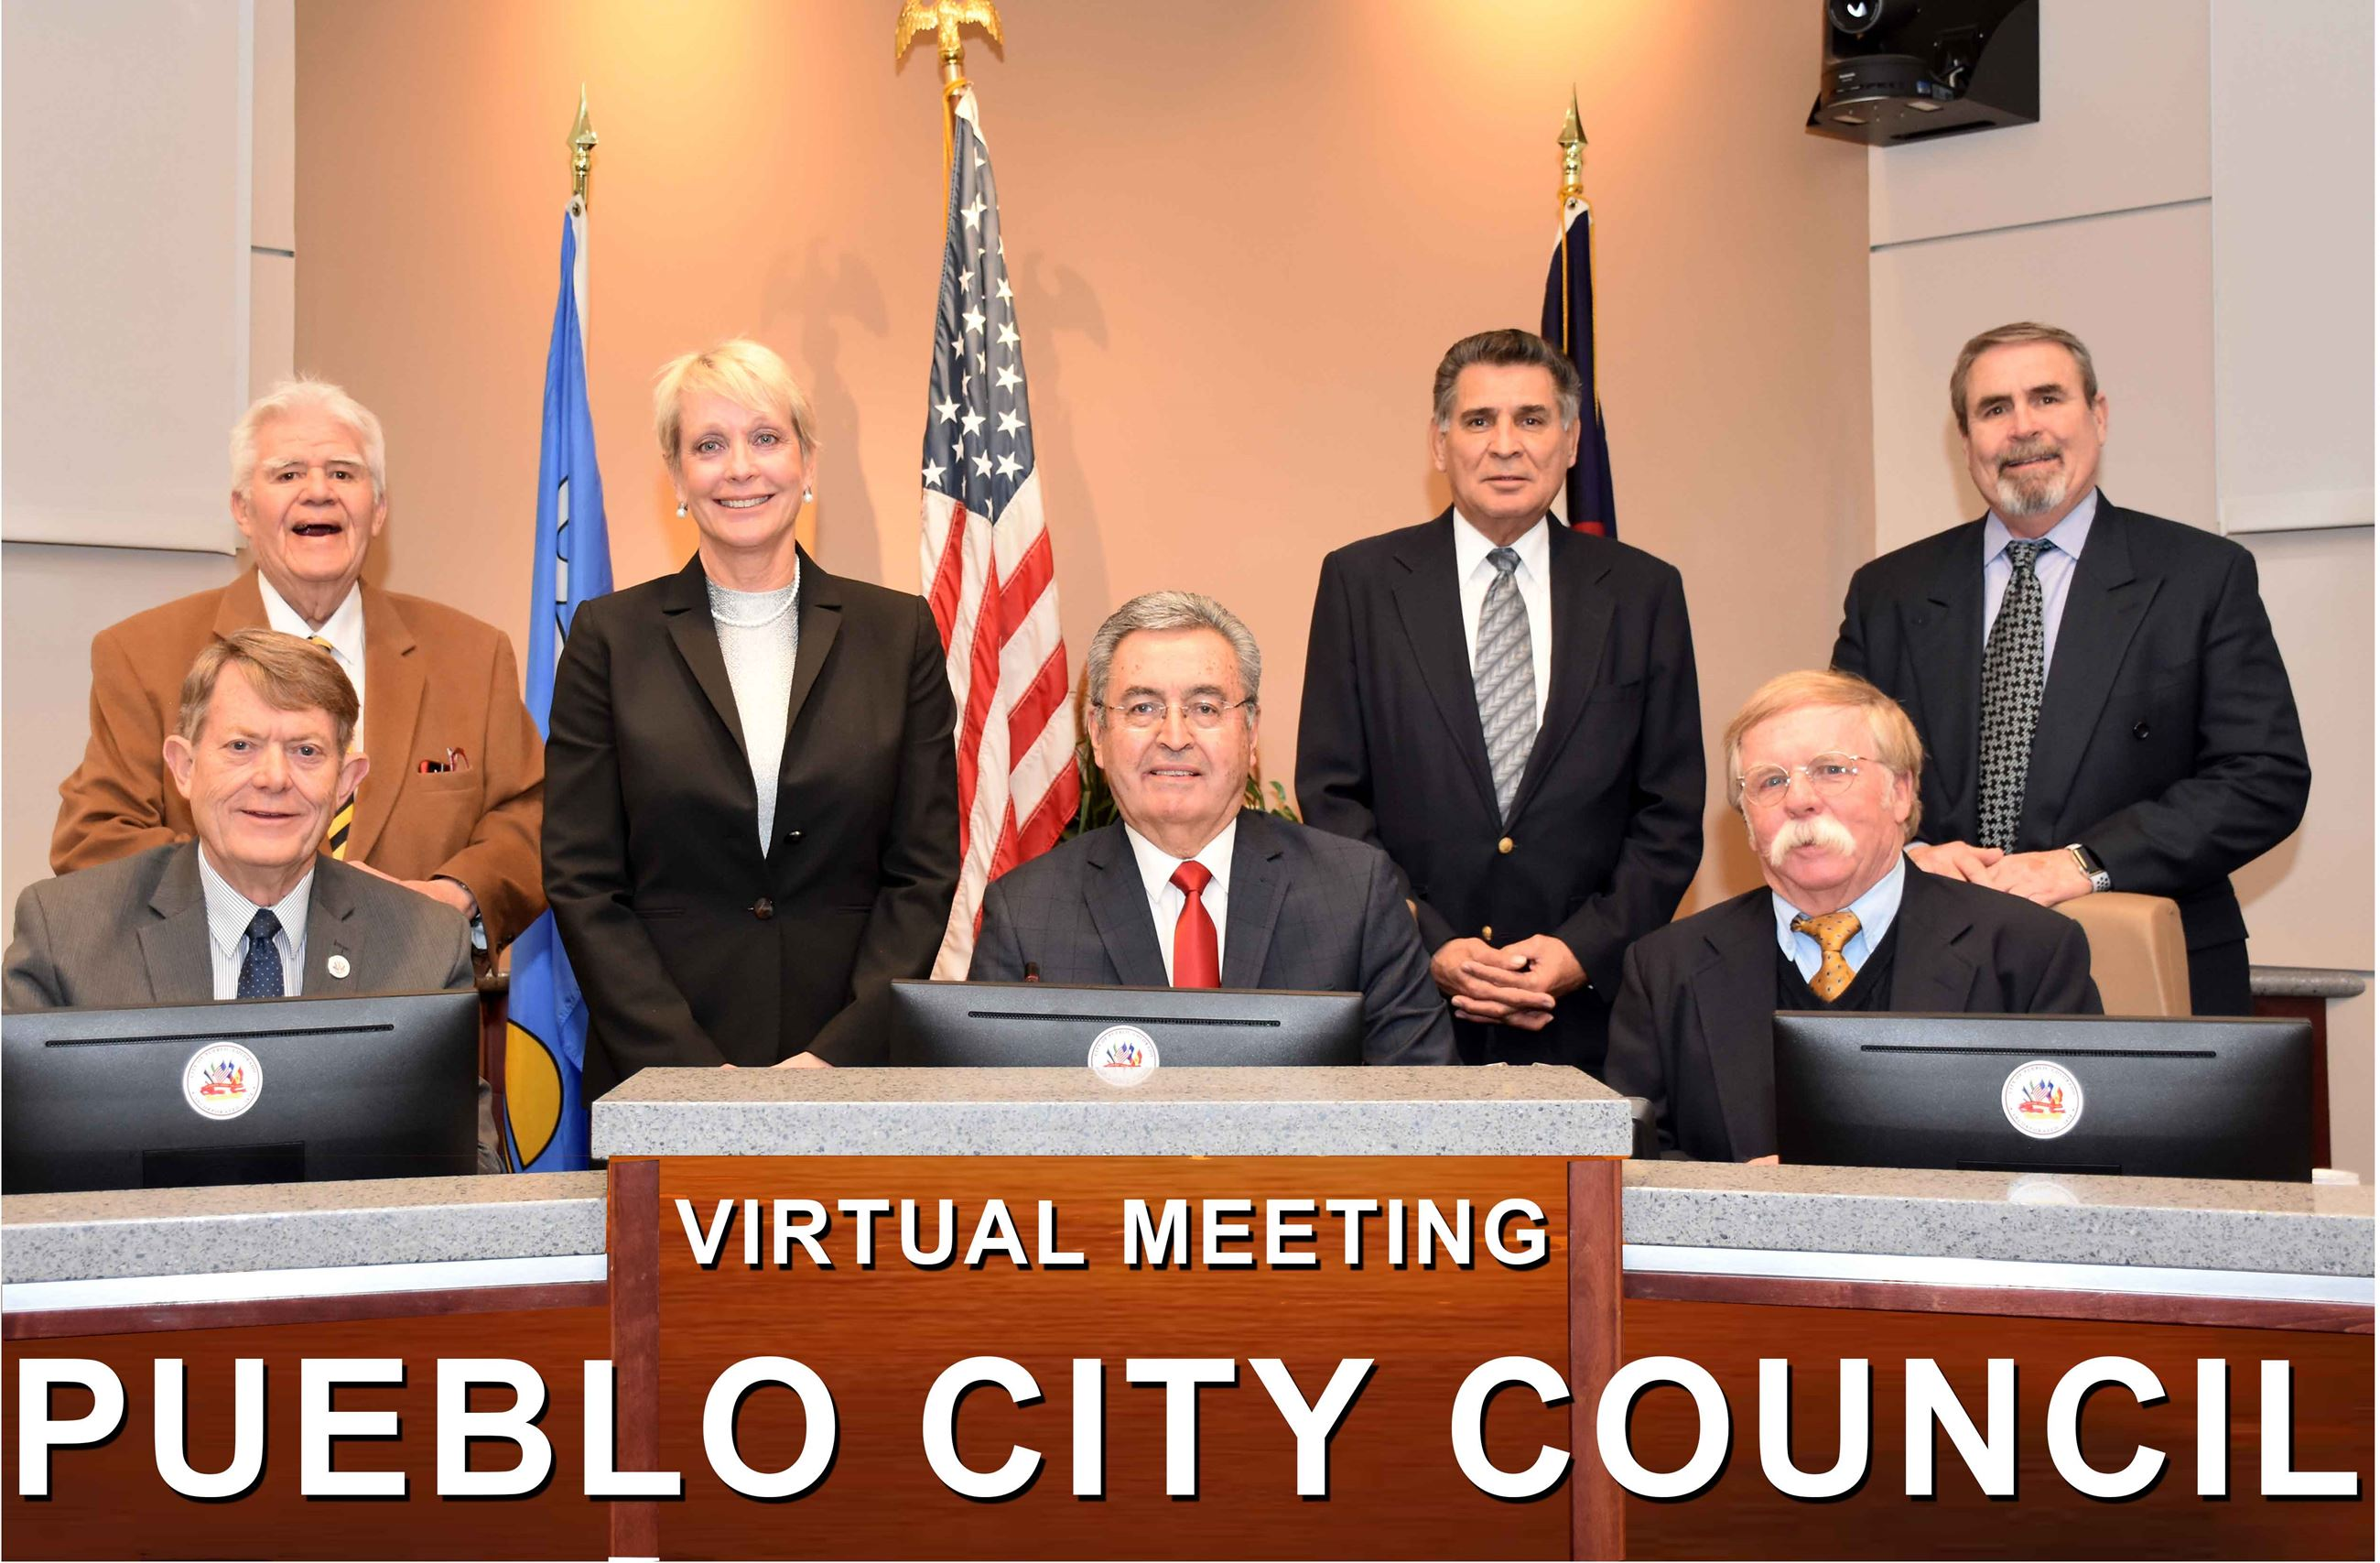 2020 Group photo of council members